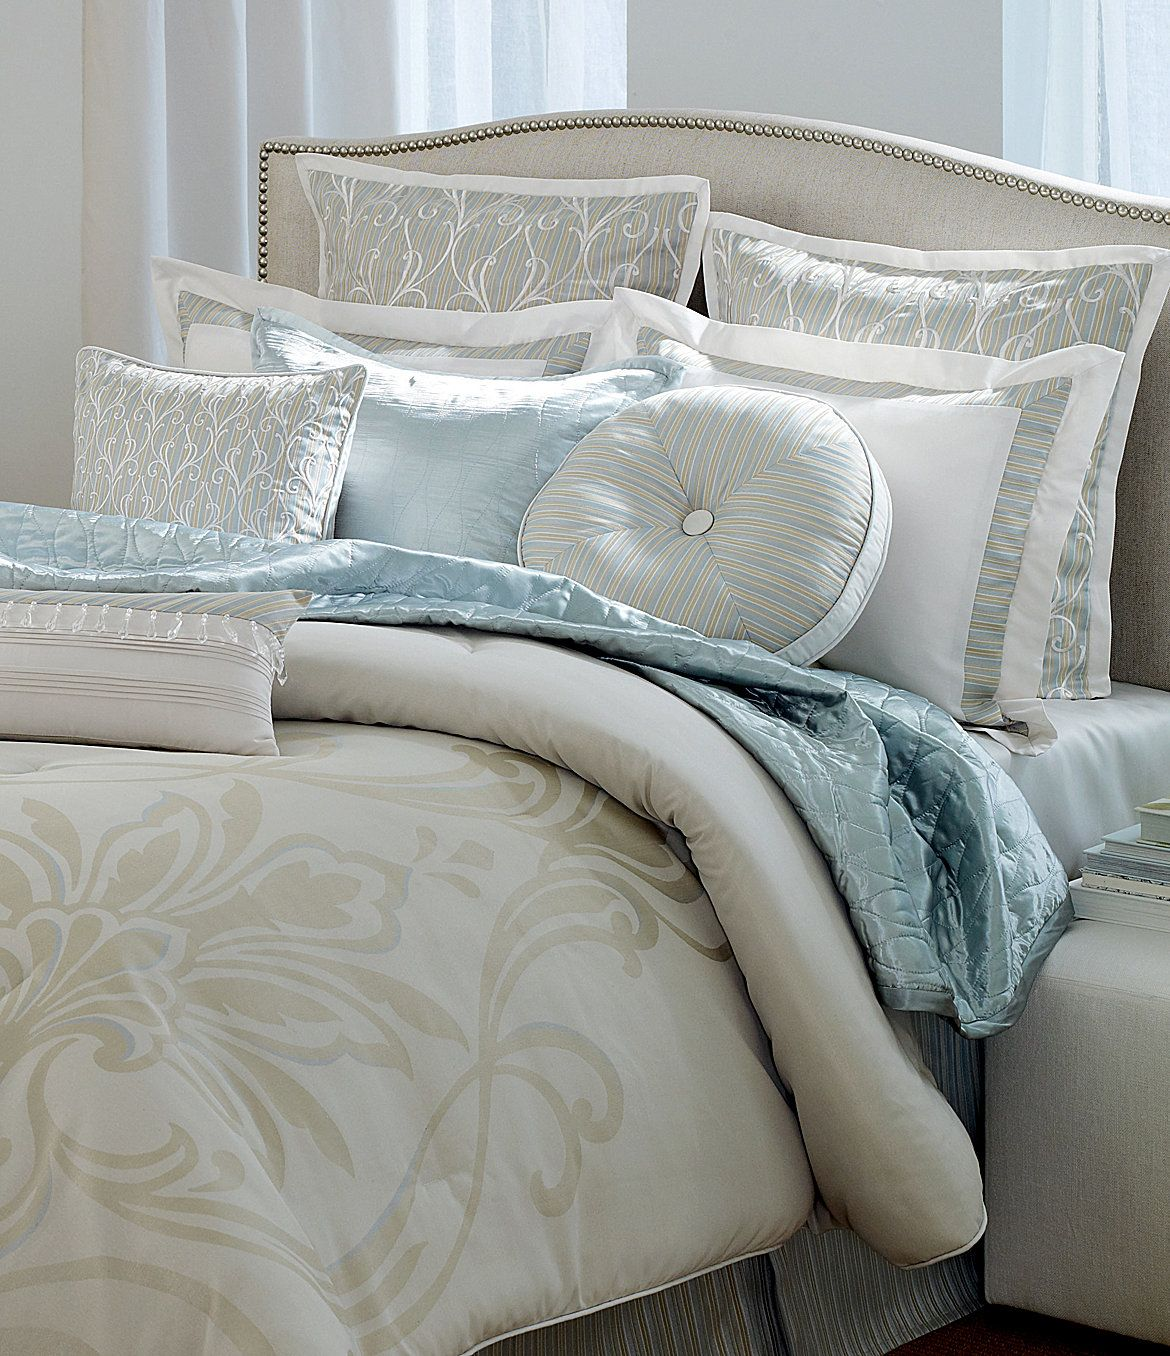 Spa Bedroom Decor Love This Bedding Doing Bedroom In Gray And Bathroom In The Spa